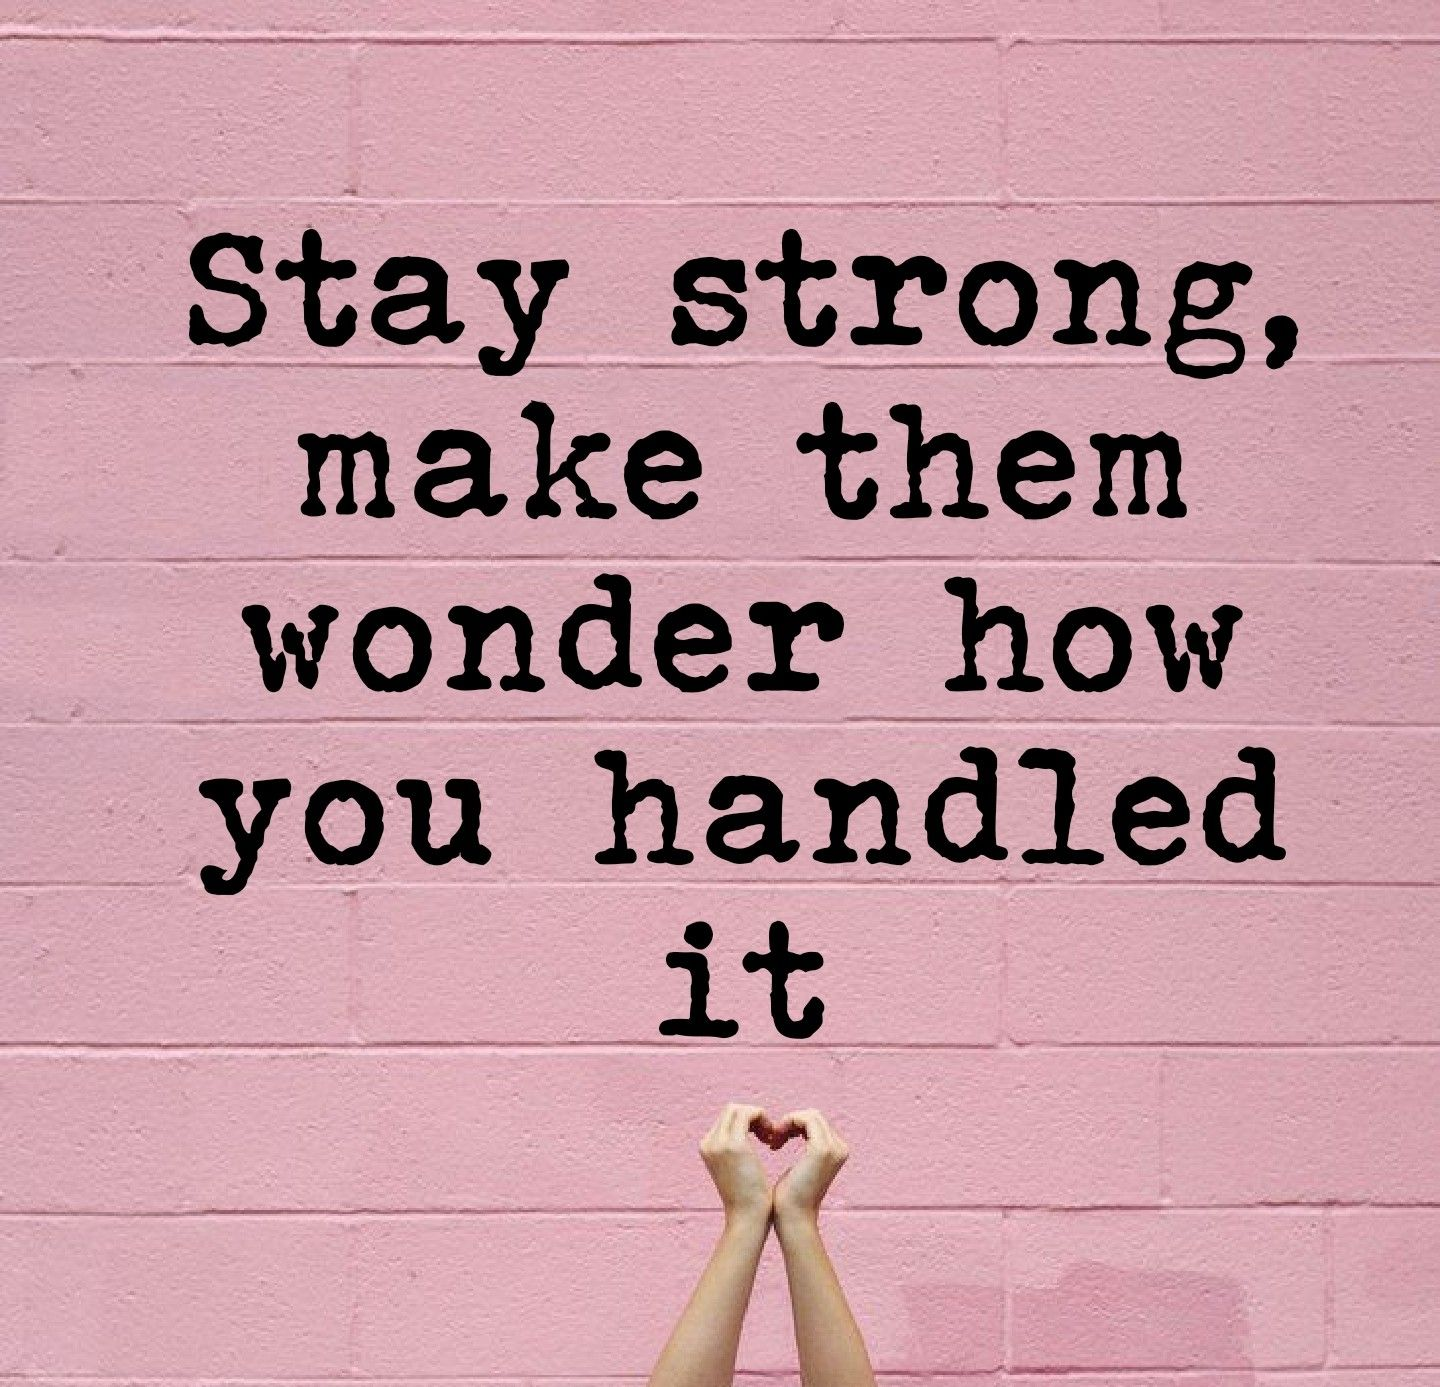 Pin By Gressyana On Quotes Stay Strong Quotes Positive Quotes Strong Quotes